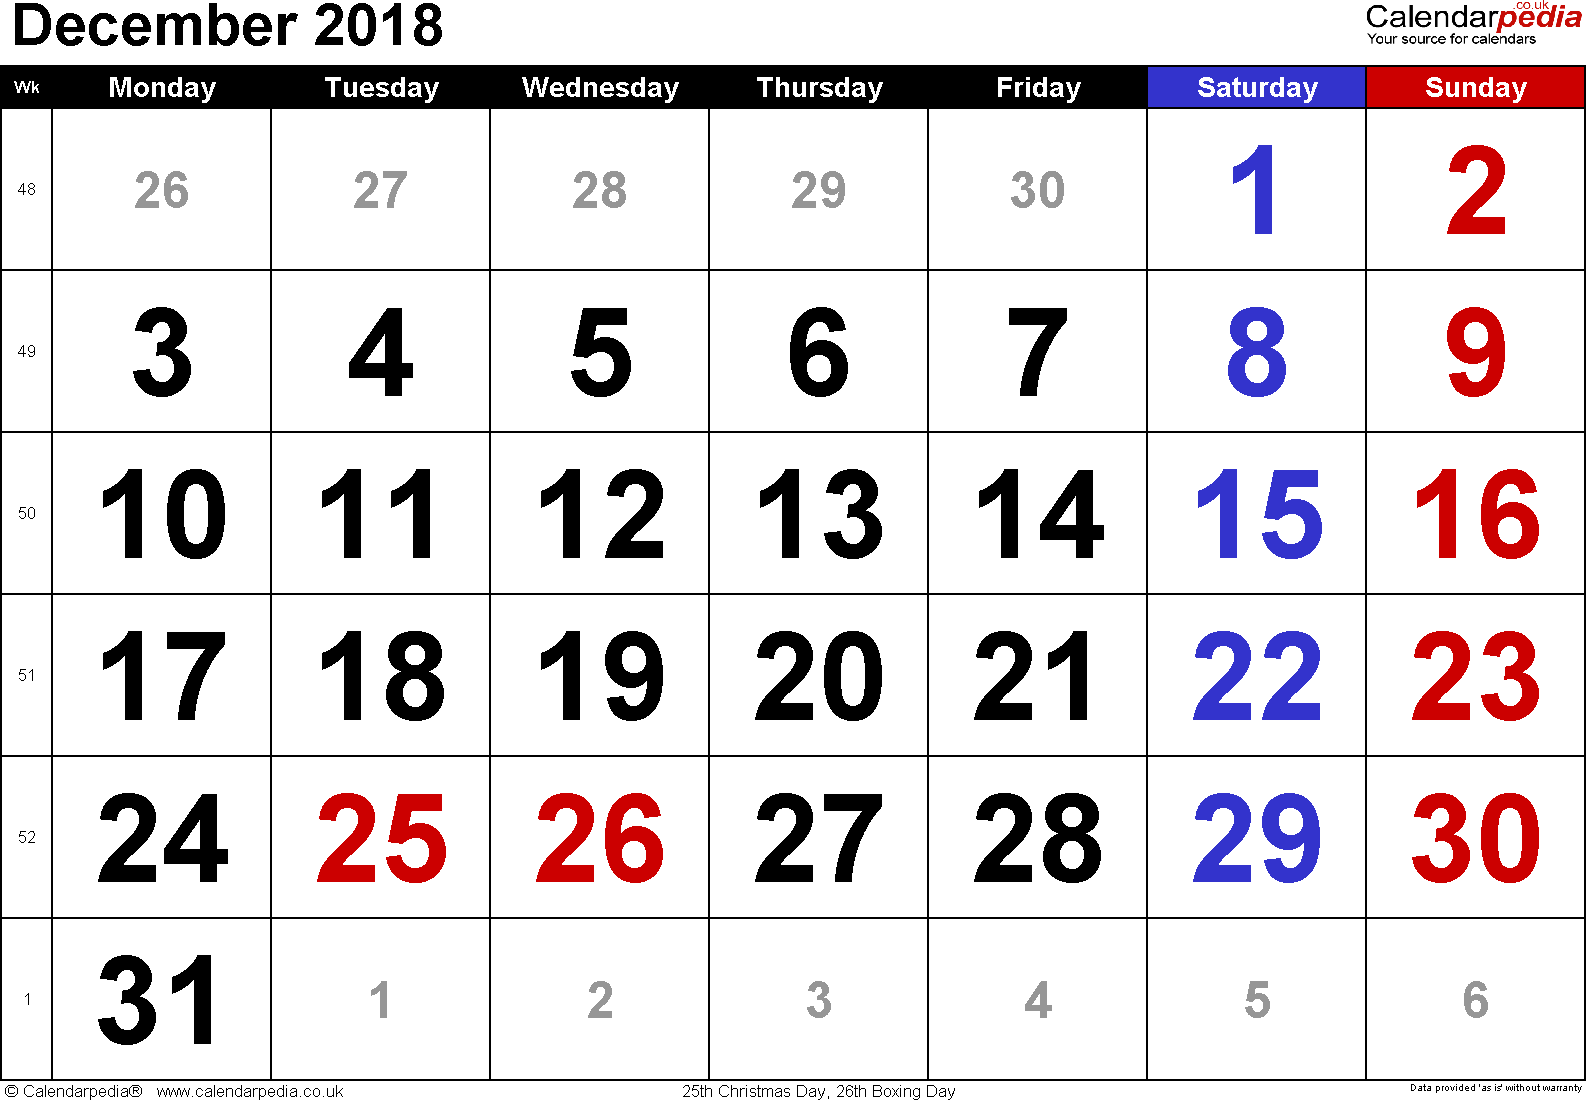 Calendar December 2018, landscape orientation, large numerals, 1 page, with UK bank holidays and week numbers